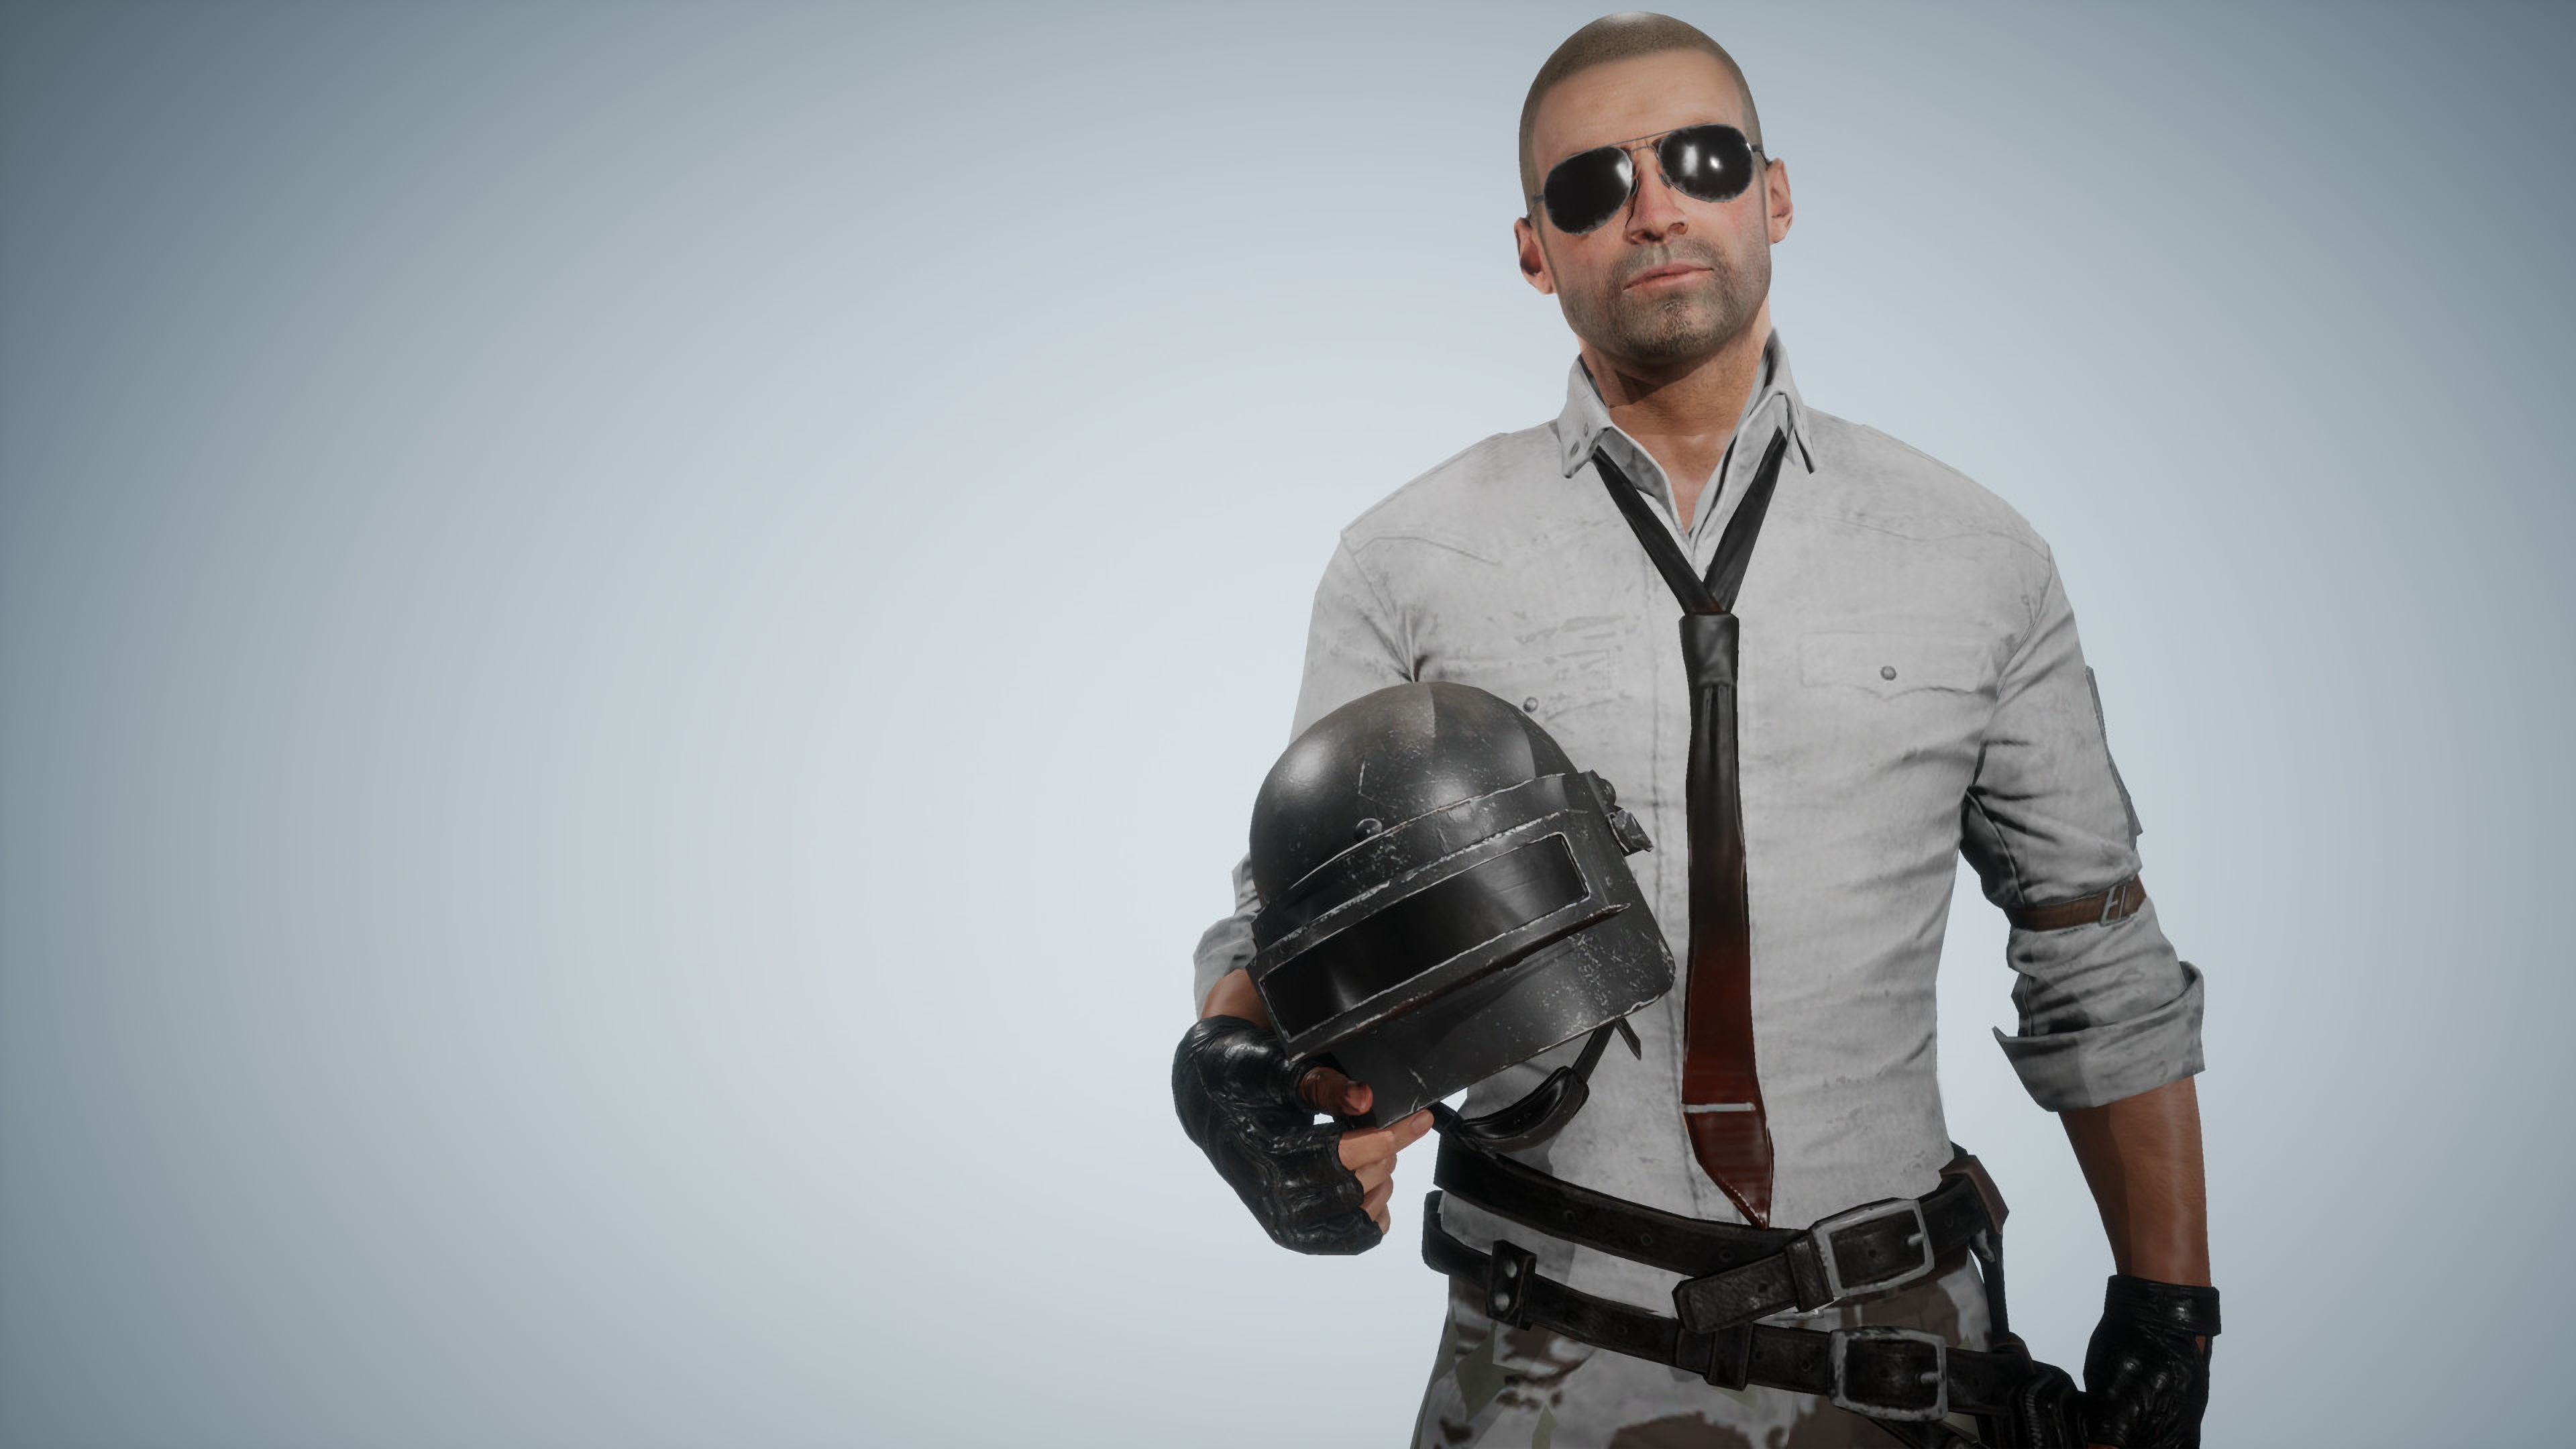 Pubg Hot Hd Wallpaper: Pubg Helmet Guy Without Helmet, HD Games, 4k Wallpapers